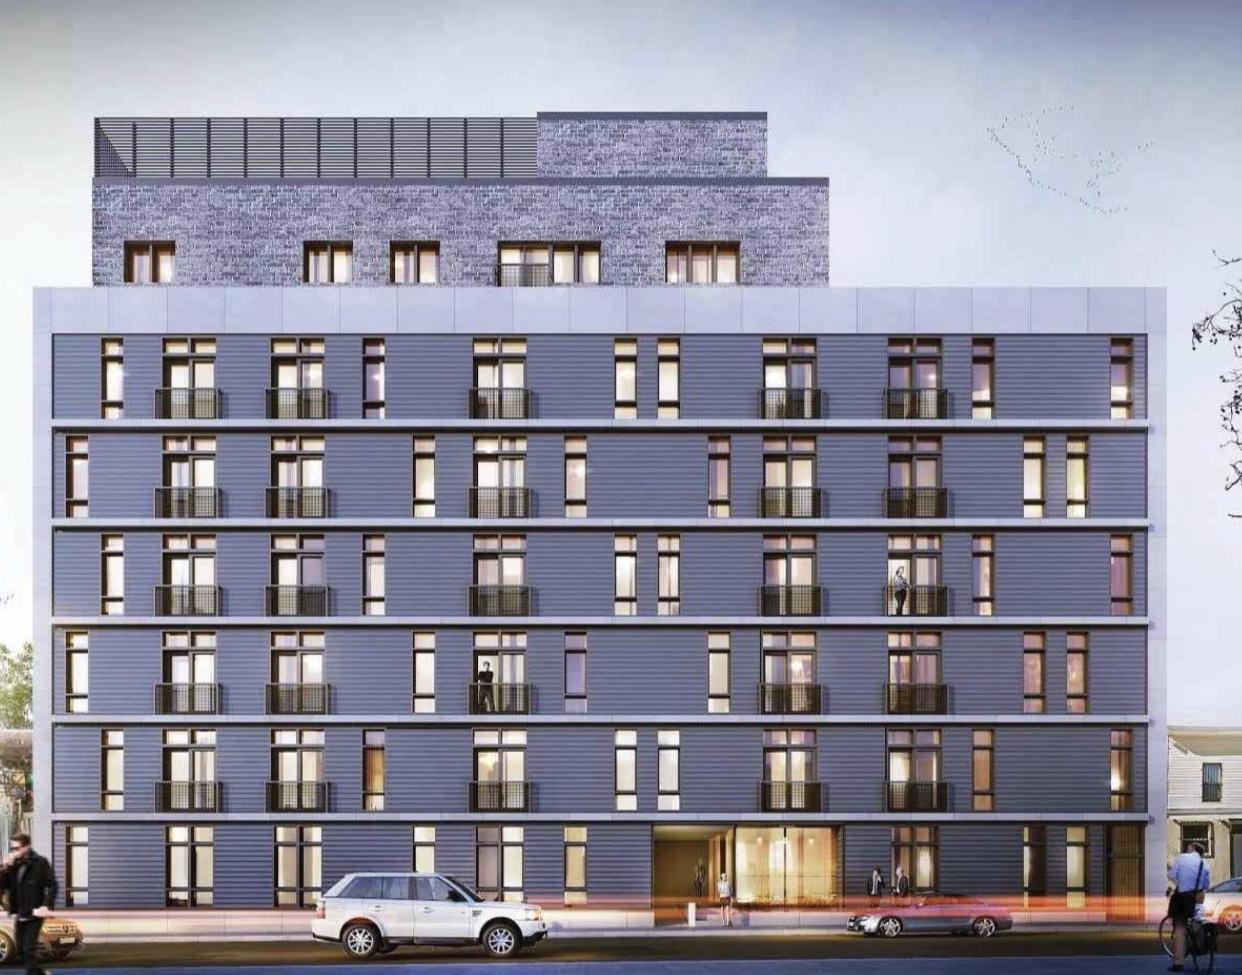 Rendering of 1663 East New York Ave - Frank J. Quatela Architect